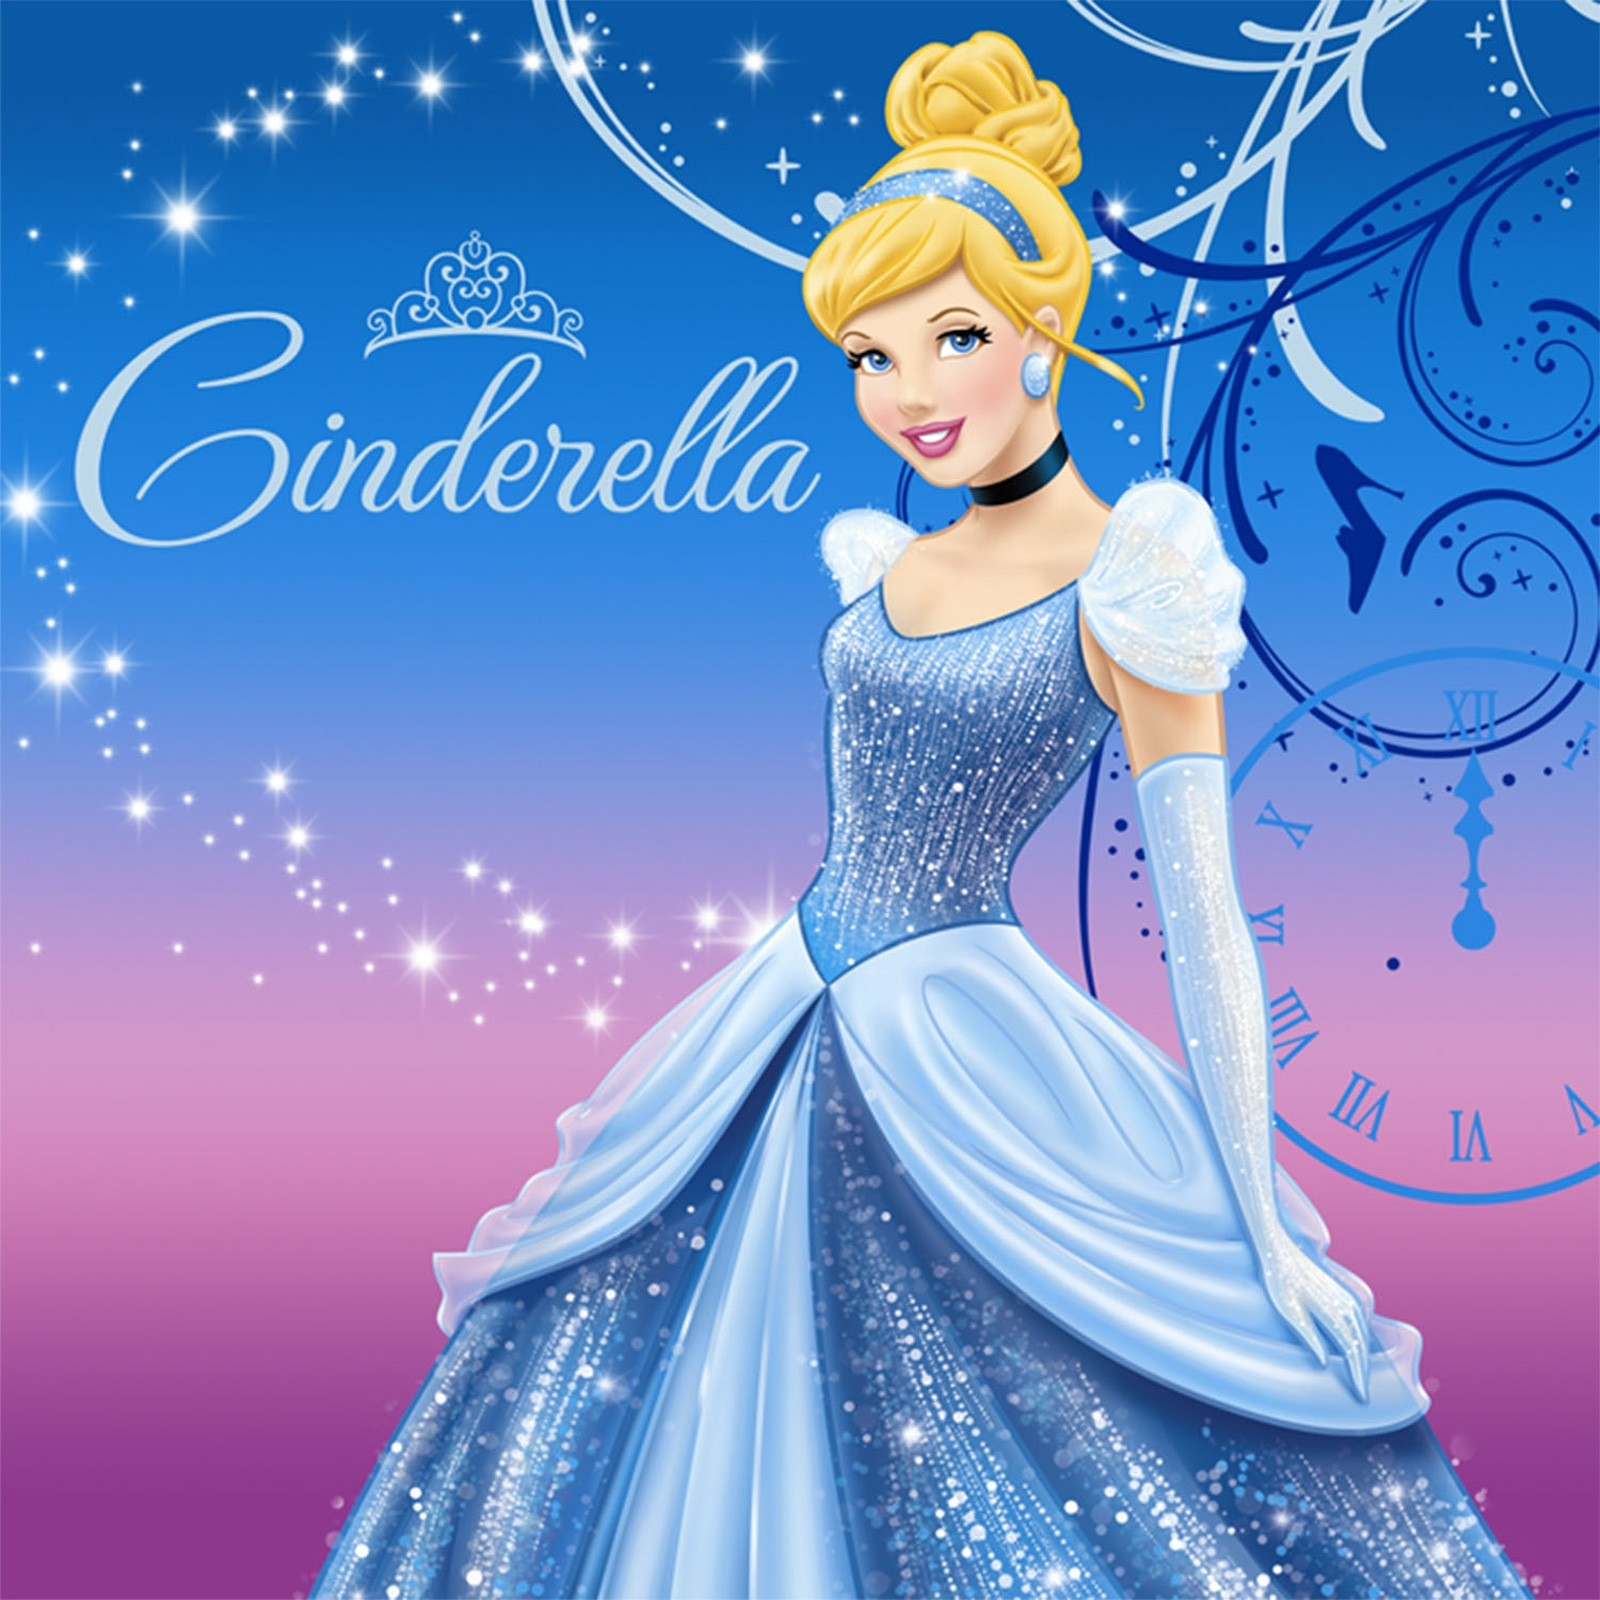 disney cinderella princess hd desktop wallpaper